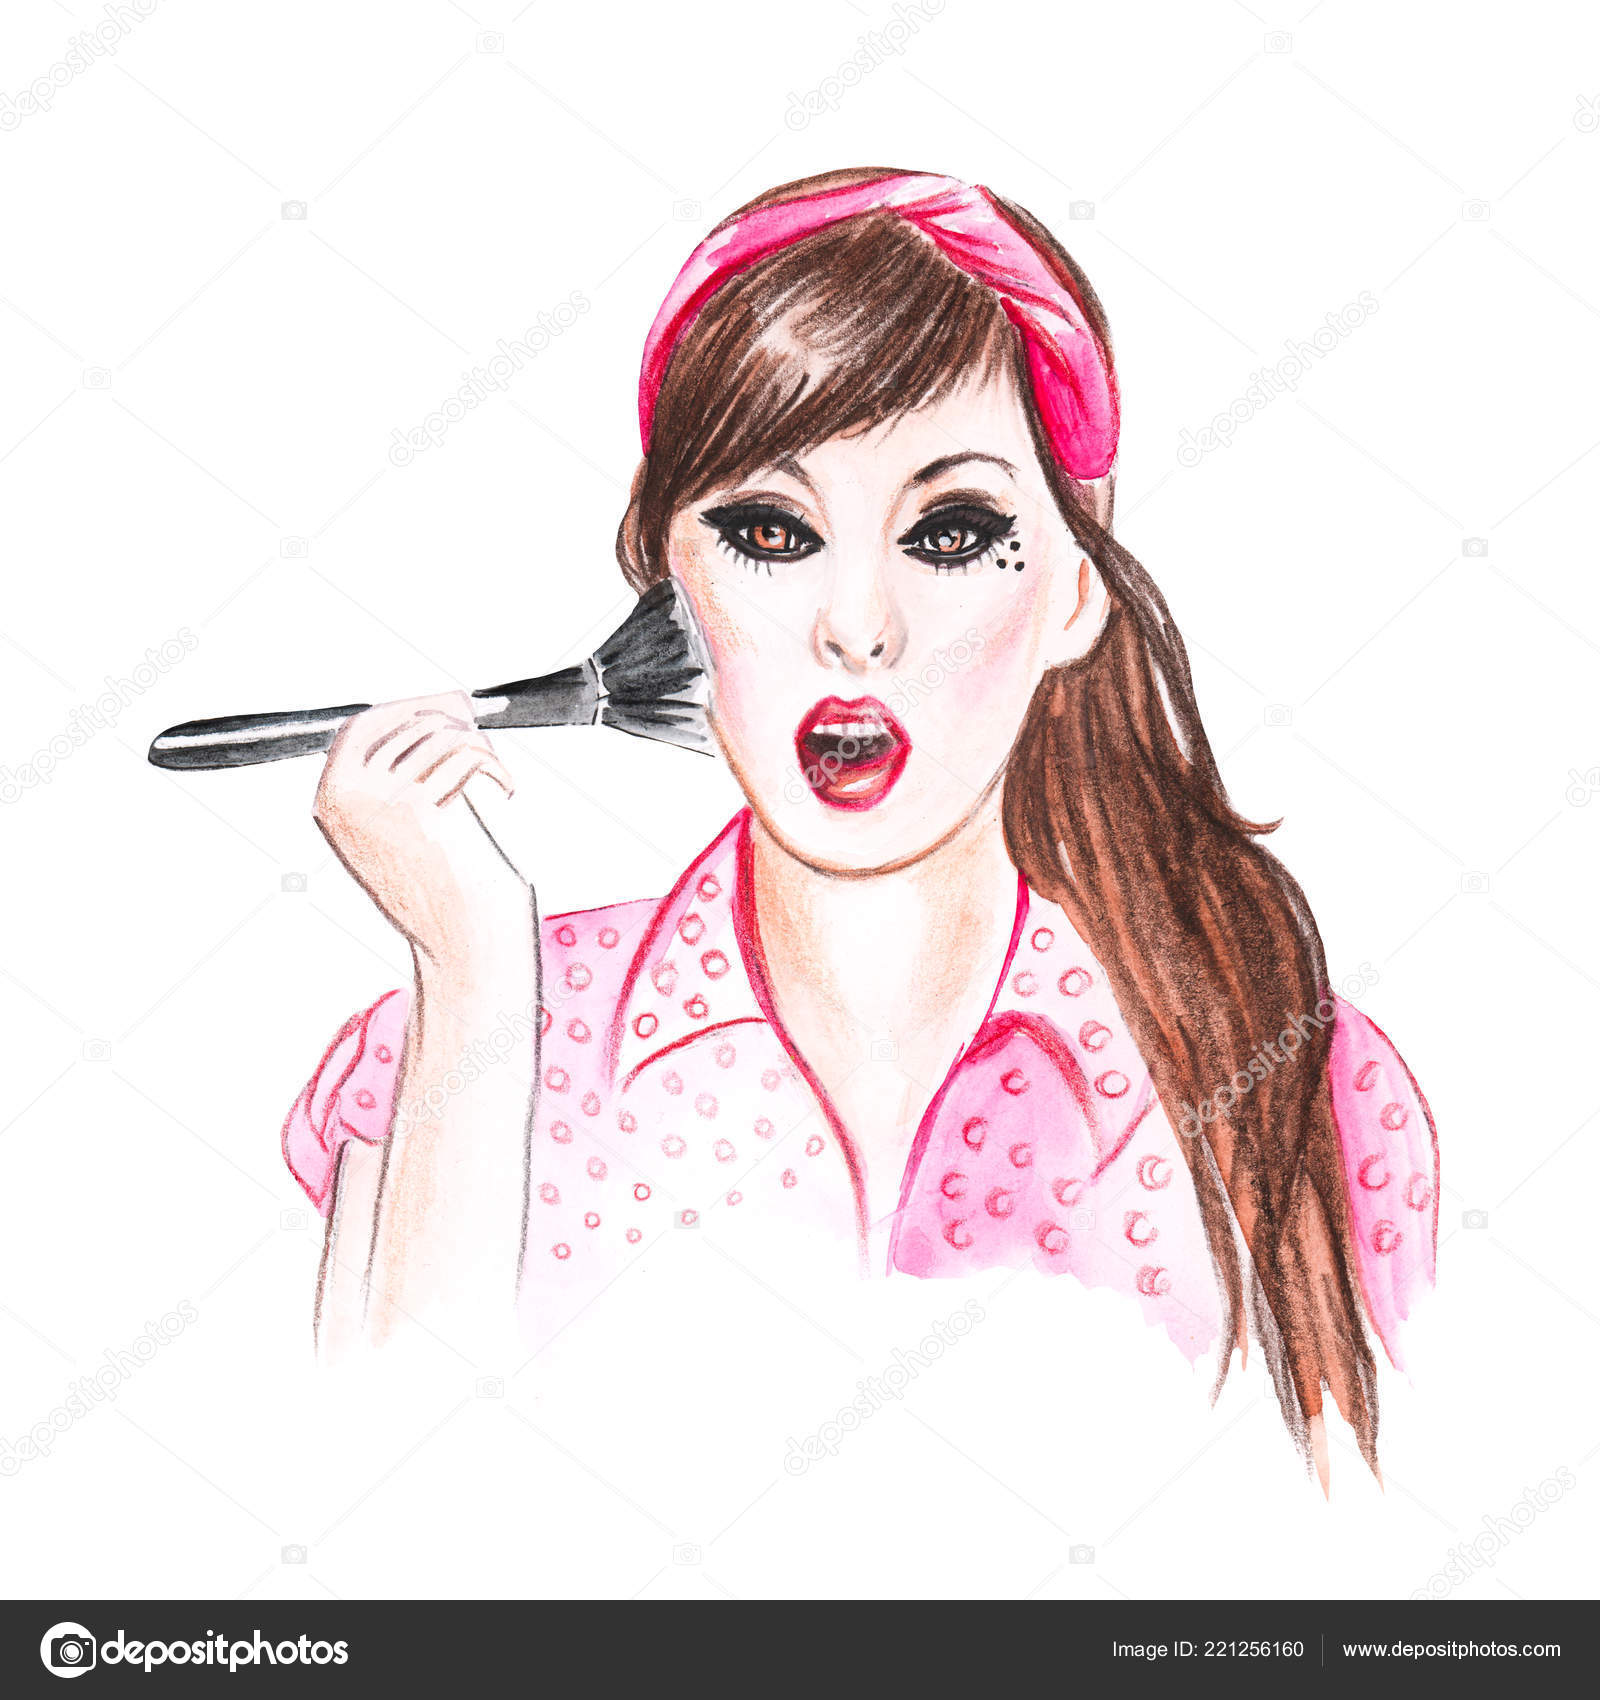 Hand drawing portrait of a girl makeup artist stock photo